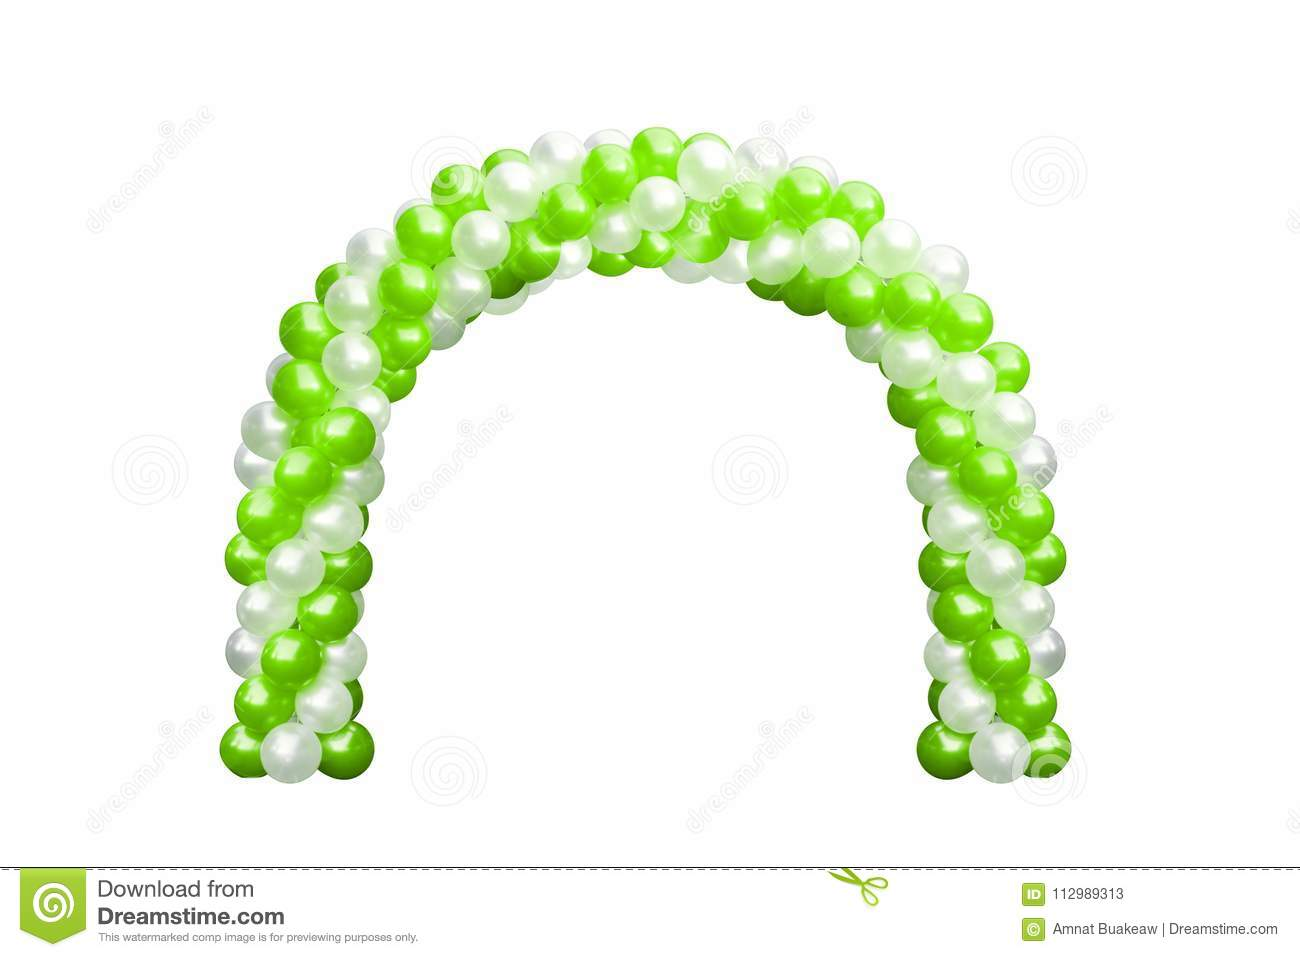 Balloon Archway door Green and white, Arches wedding, Balloon Festival design decoration elements with arch floral design isolated